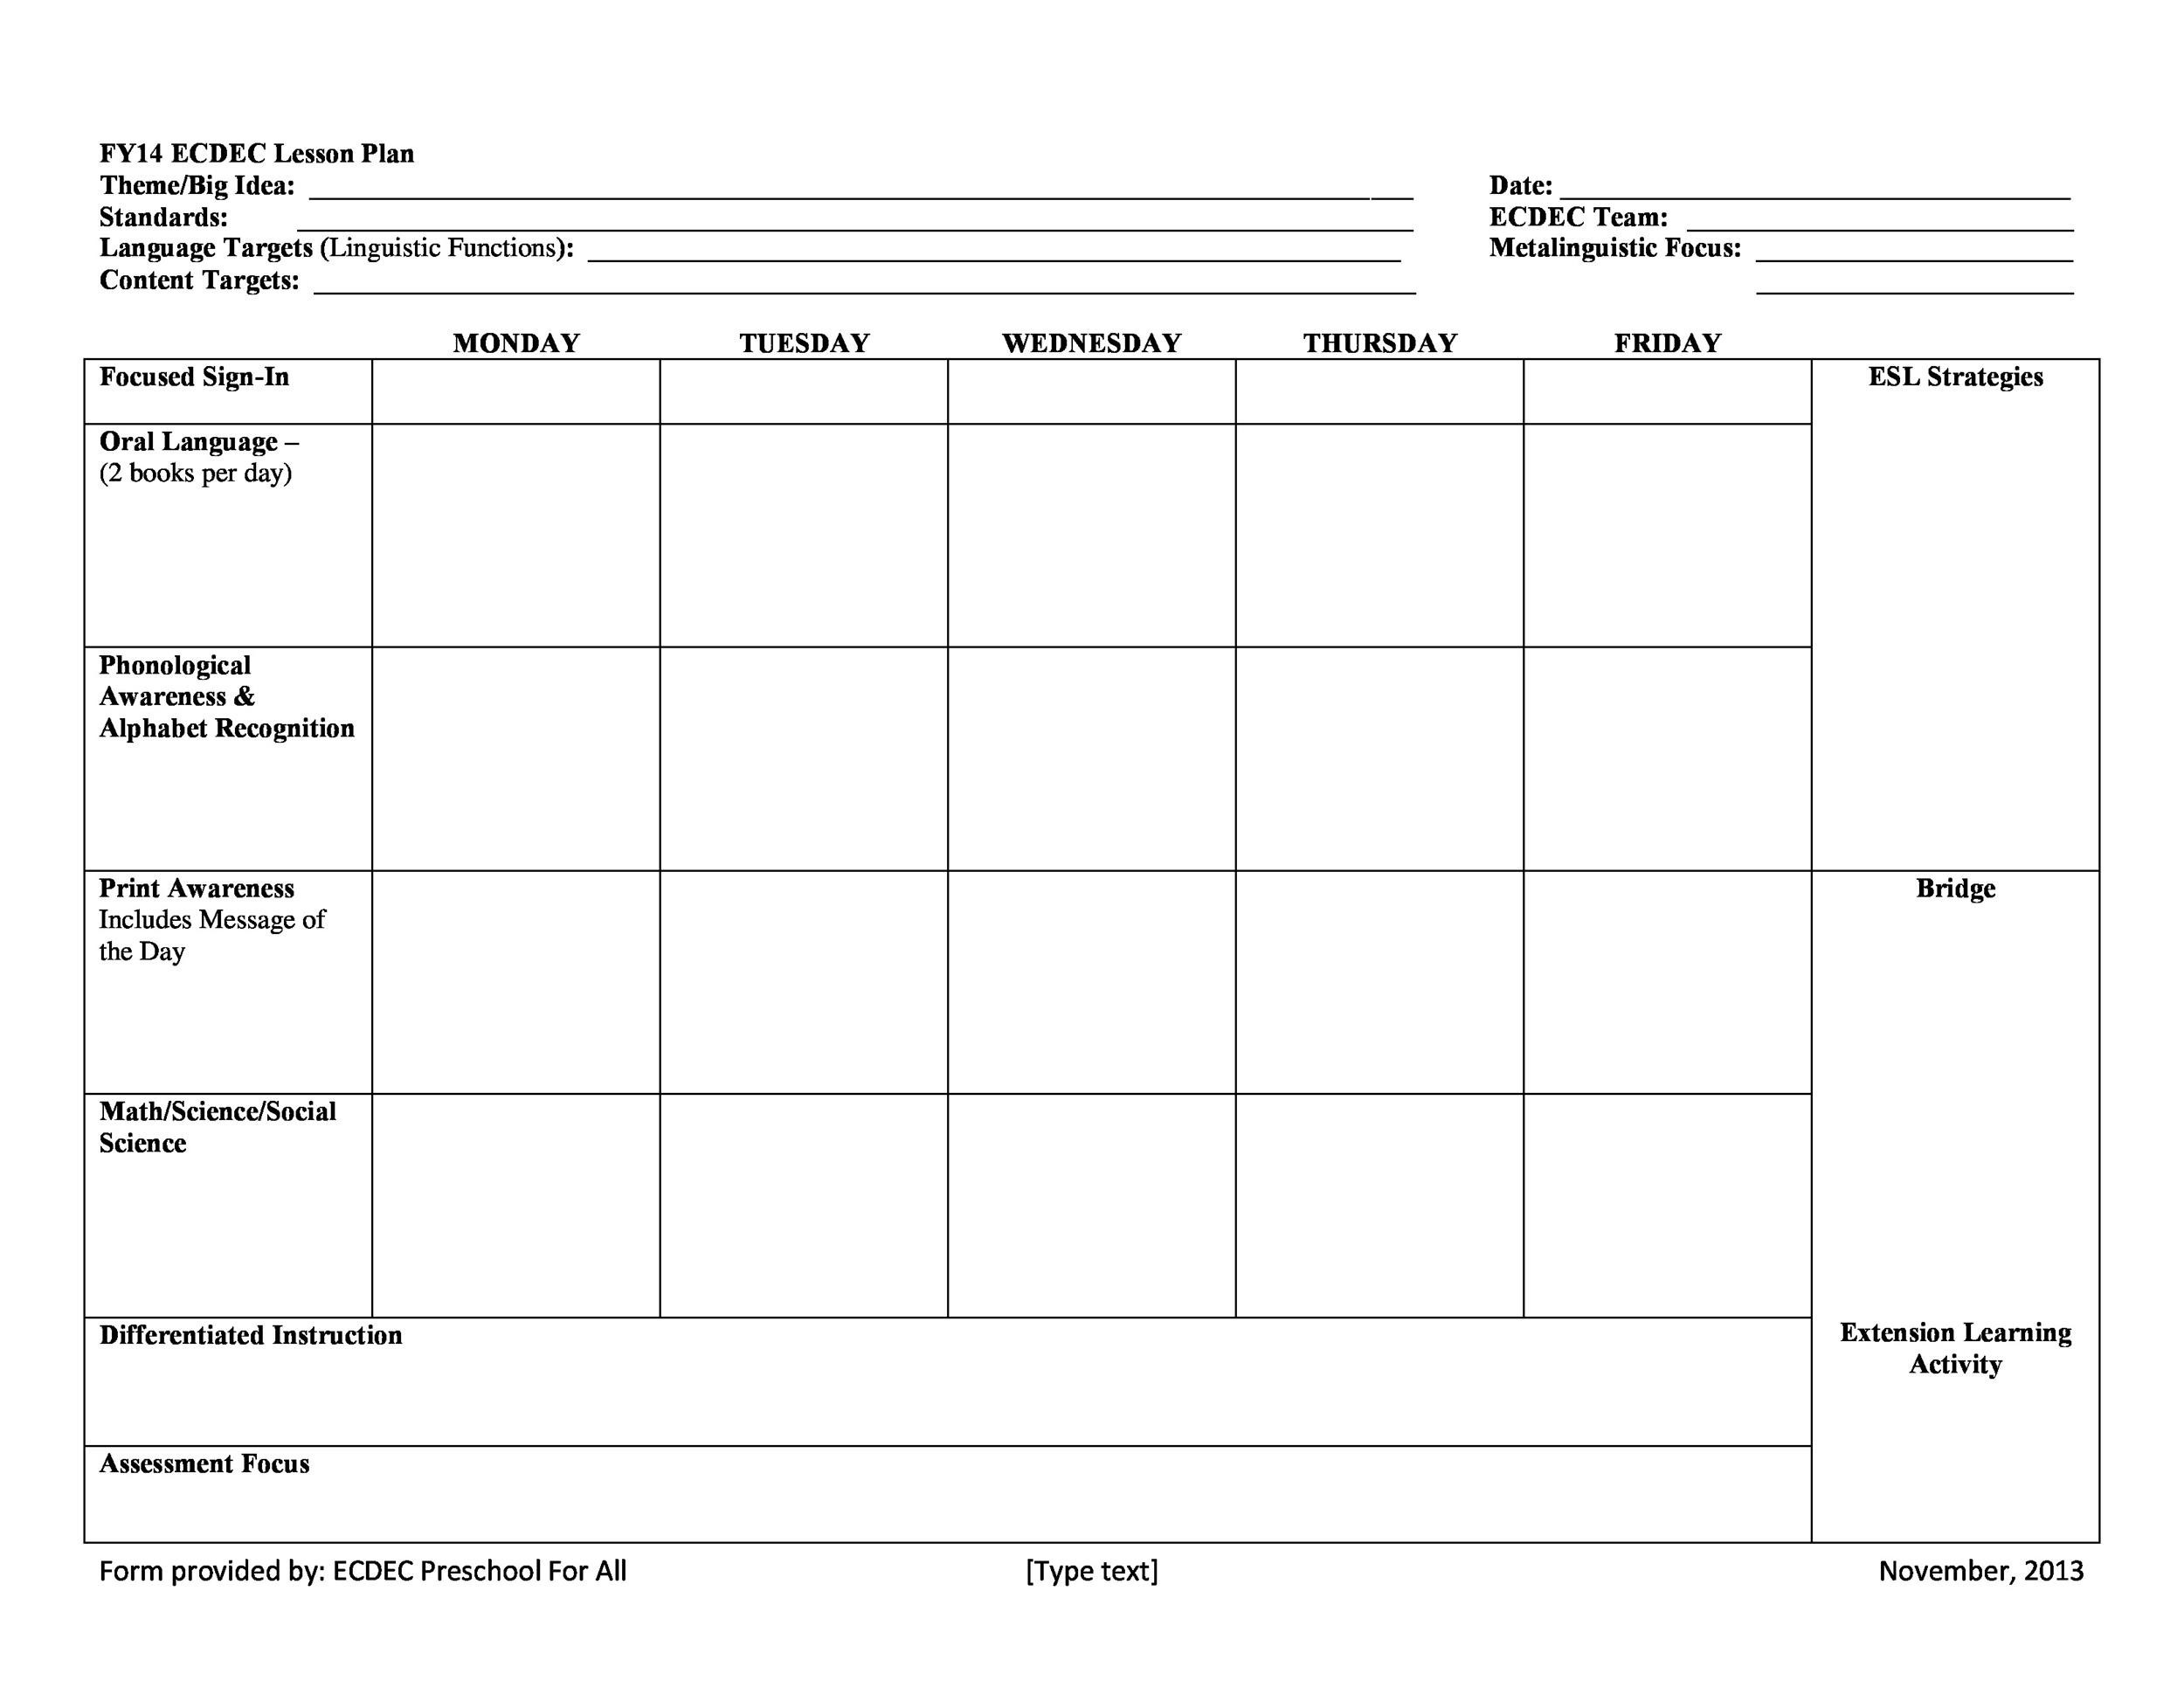 Free Printable Lesson Plan Template | 44 Free Lesson Plan Templates Common Core Preschool Weekly